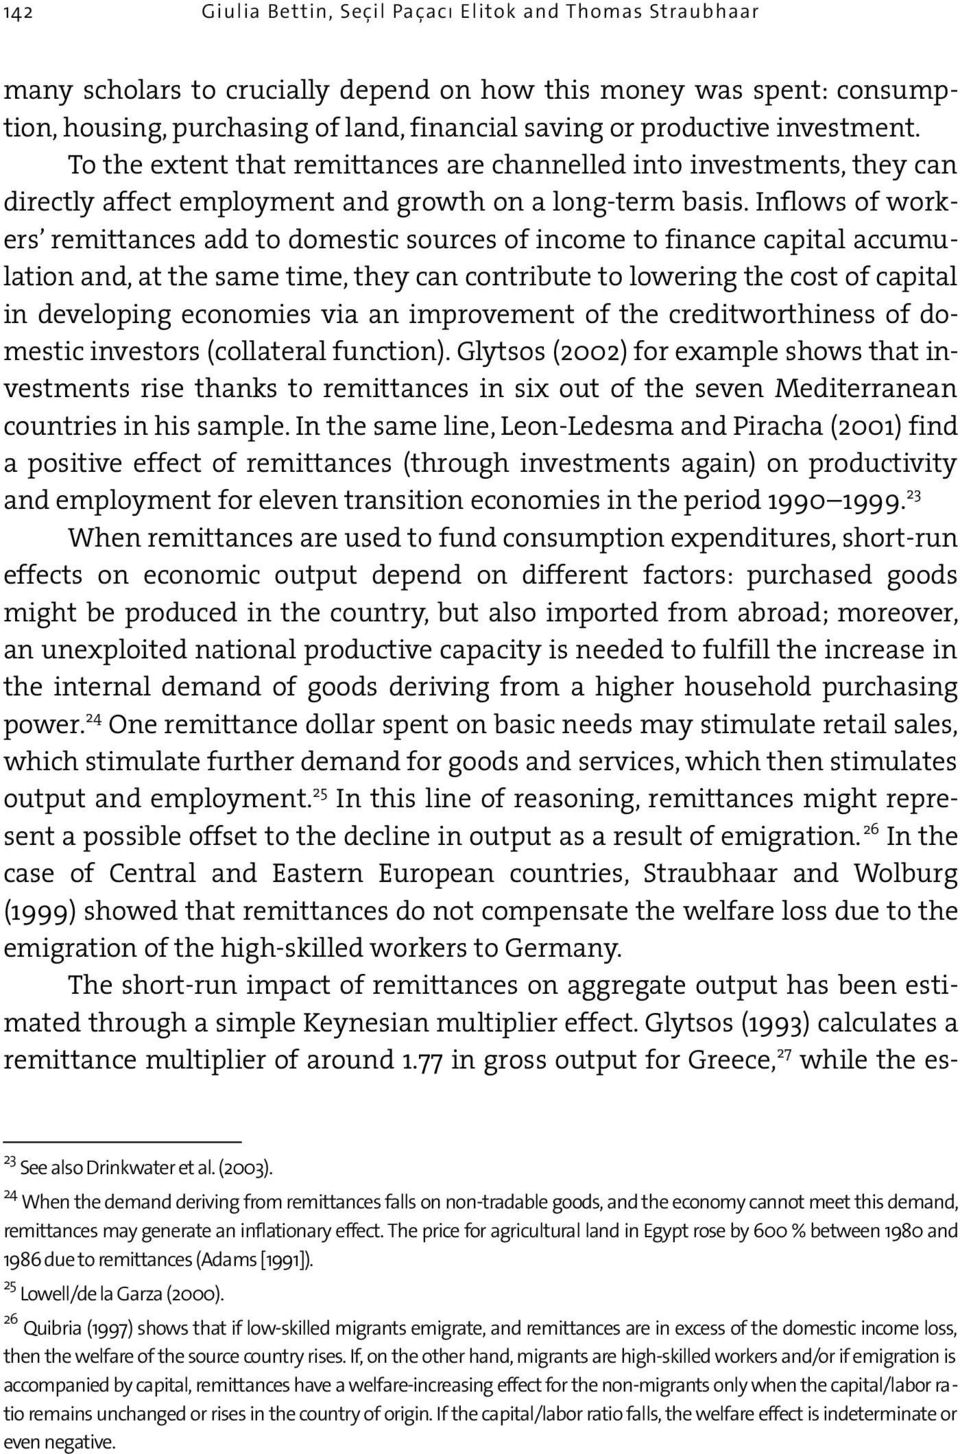 Inflows of workers remittances add to domestic sources of income to finance capital accumulation and, at the same time, they can contribute to lowering the cost of capital in developing economies via